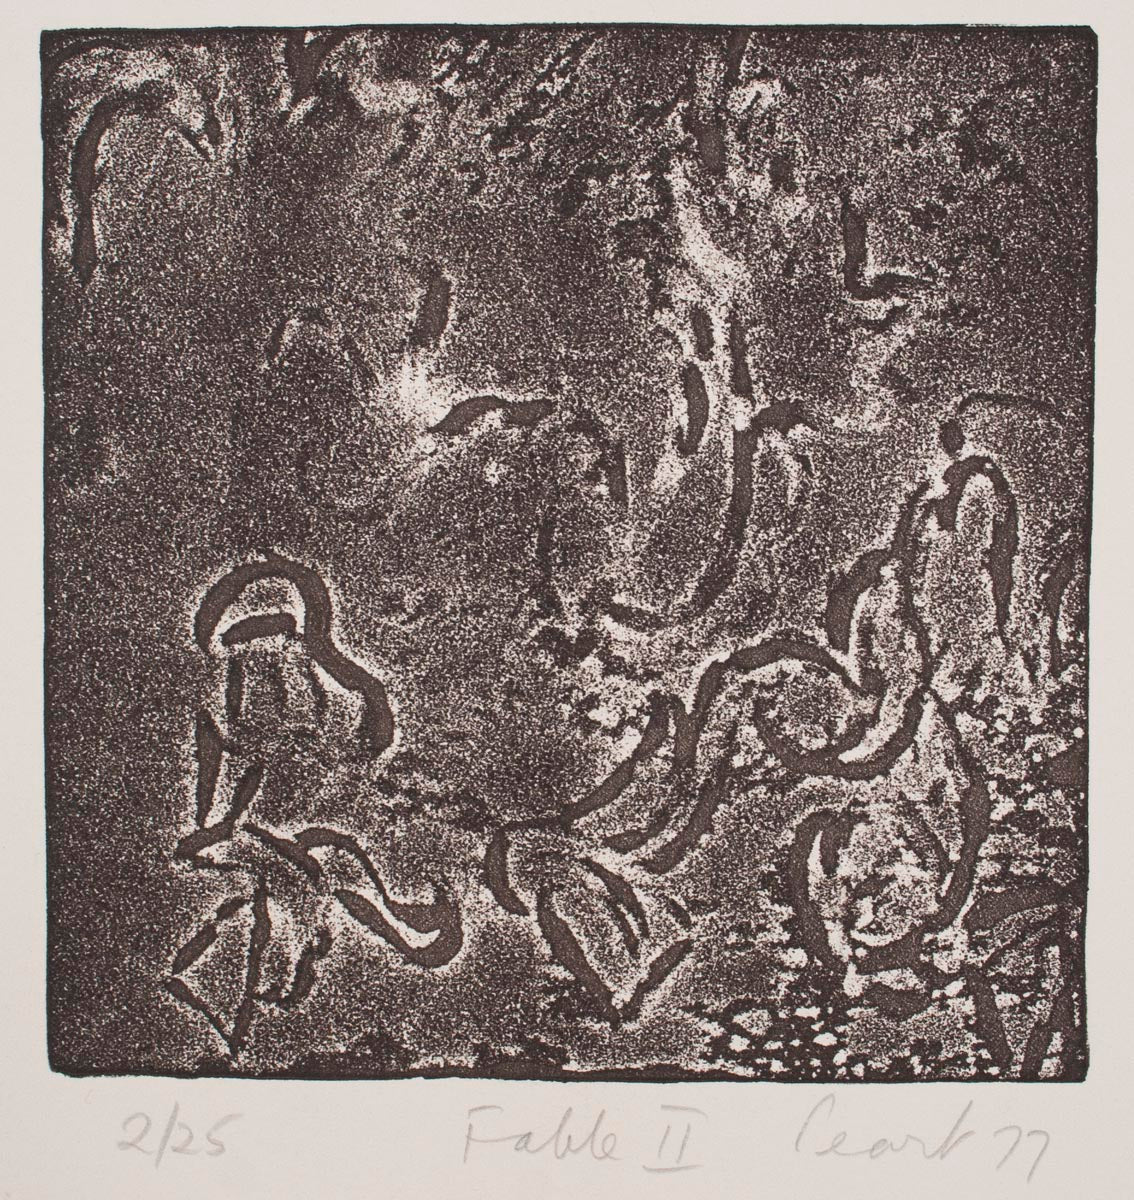 John Peart 'Fable II' - etching on paper